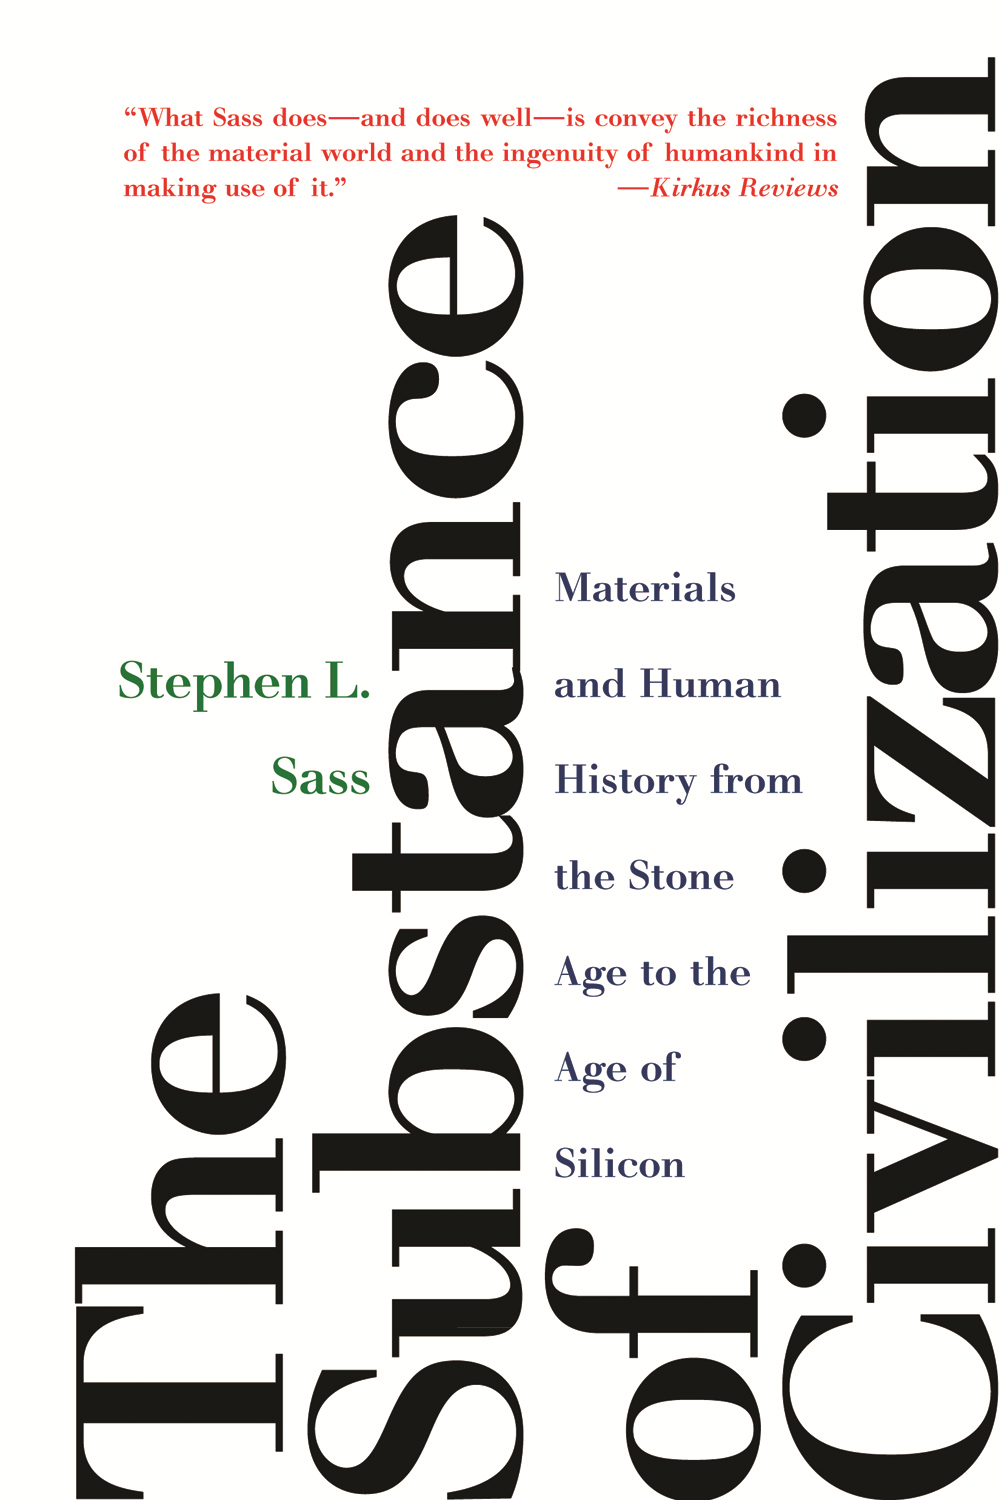 The Substance of Civilization: Materials and Human History from the Stone Age to the Age of Silicon By: Stephen L. Sass